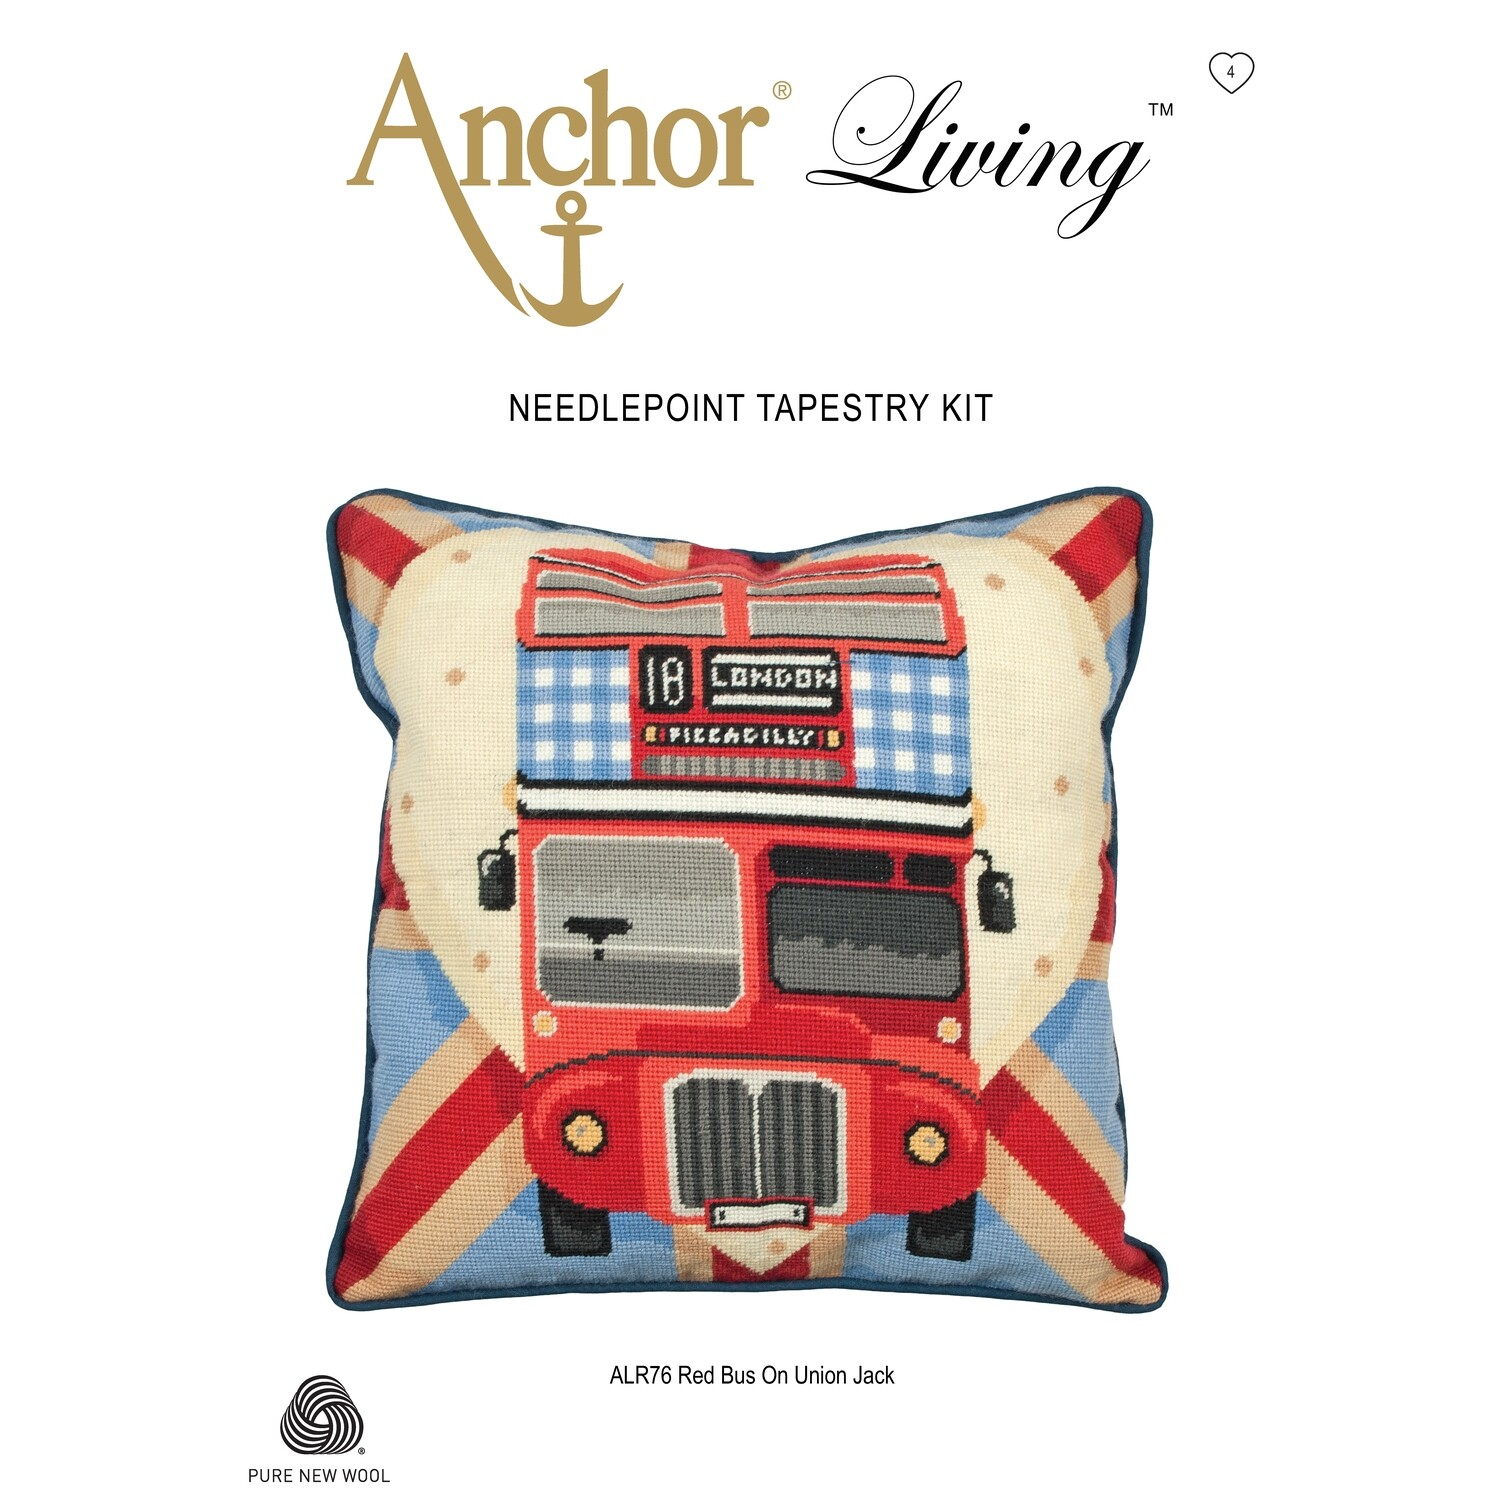 Anchor Living Tapestry Kit - Tapestry Red Bus on Union Jack Cushion